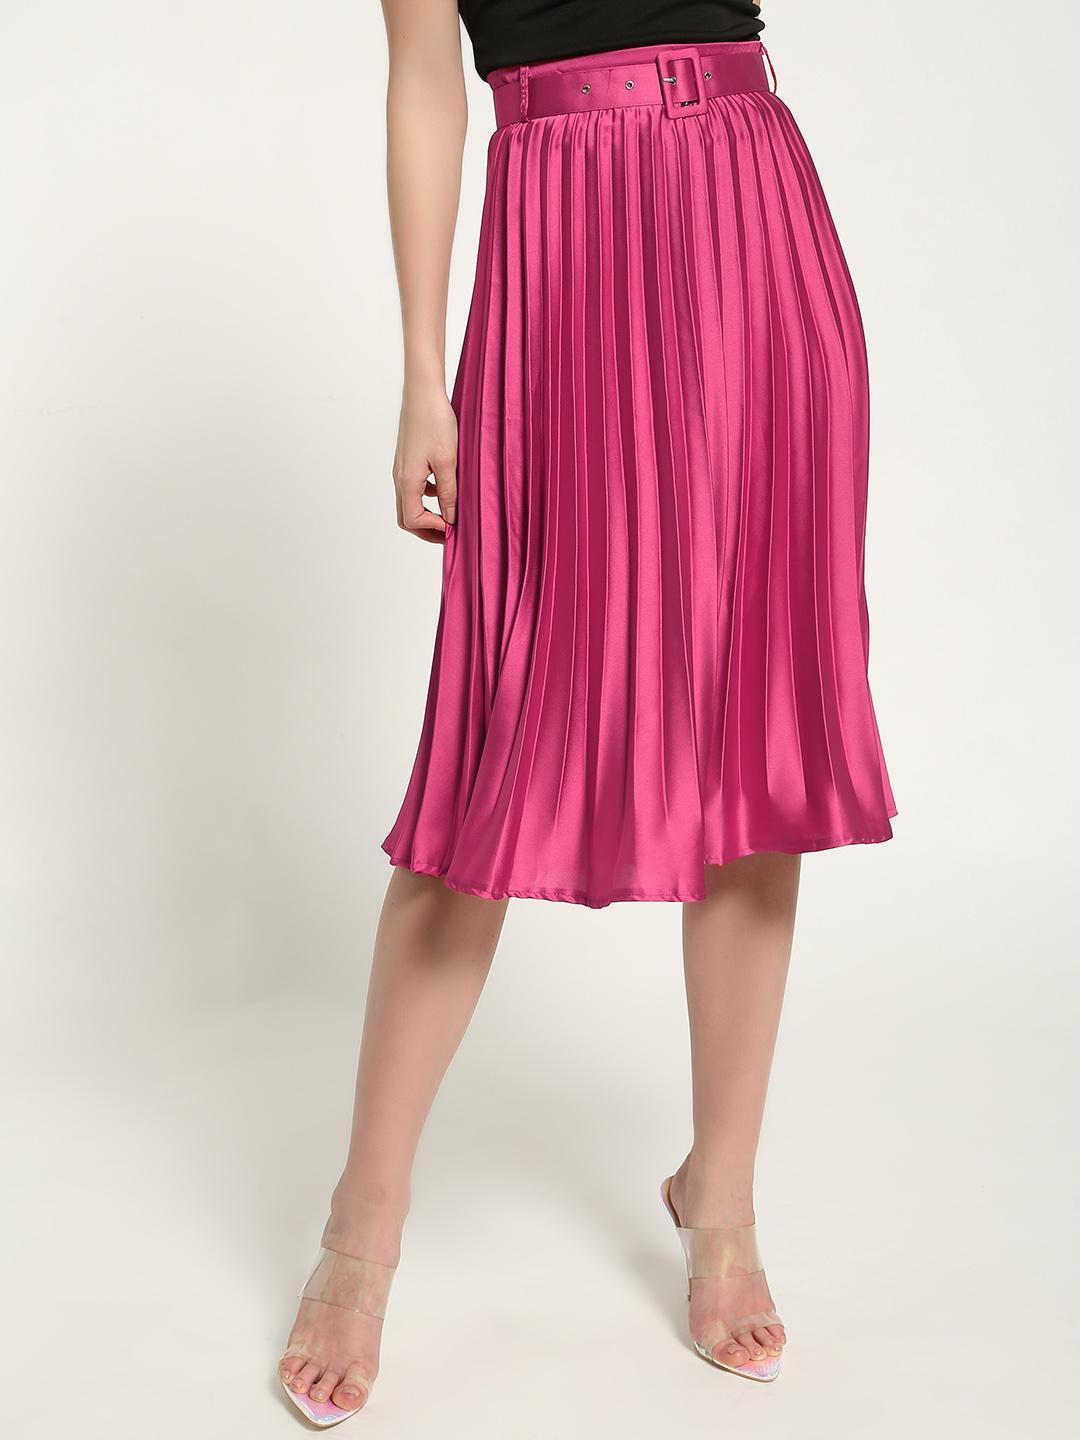 Missguided Pink Satin Belted Pleated Midi Skirt 1